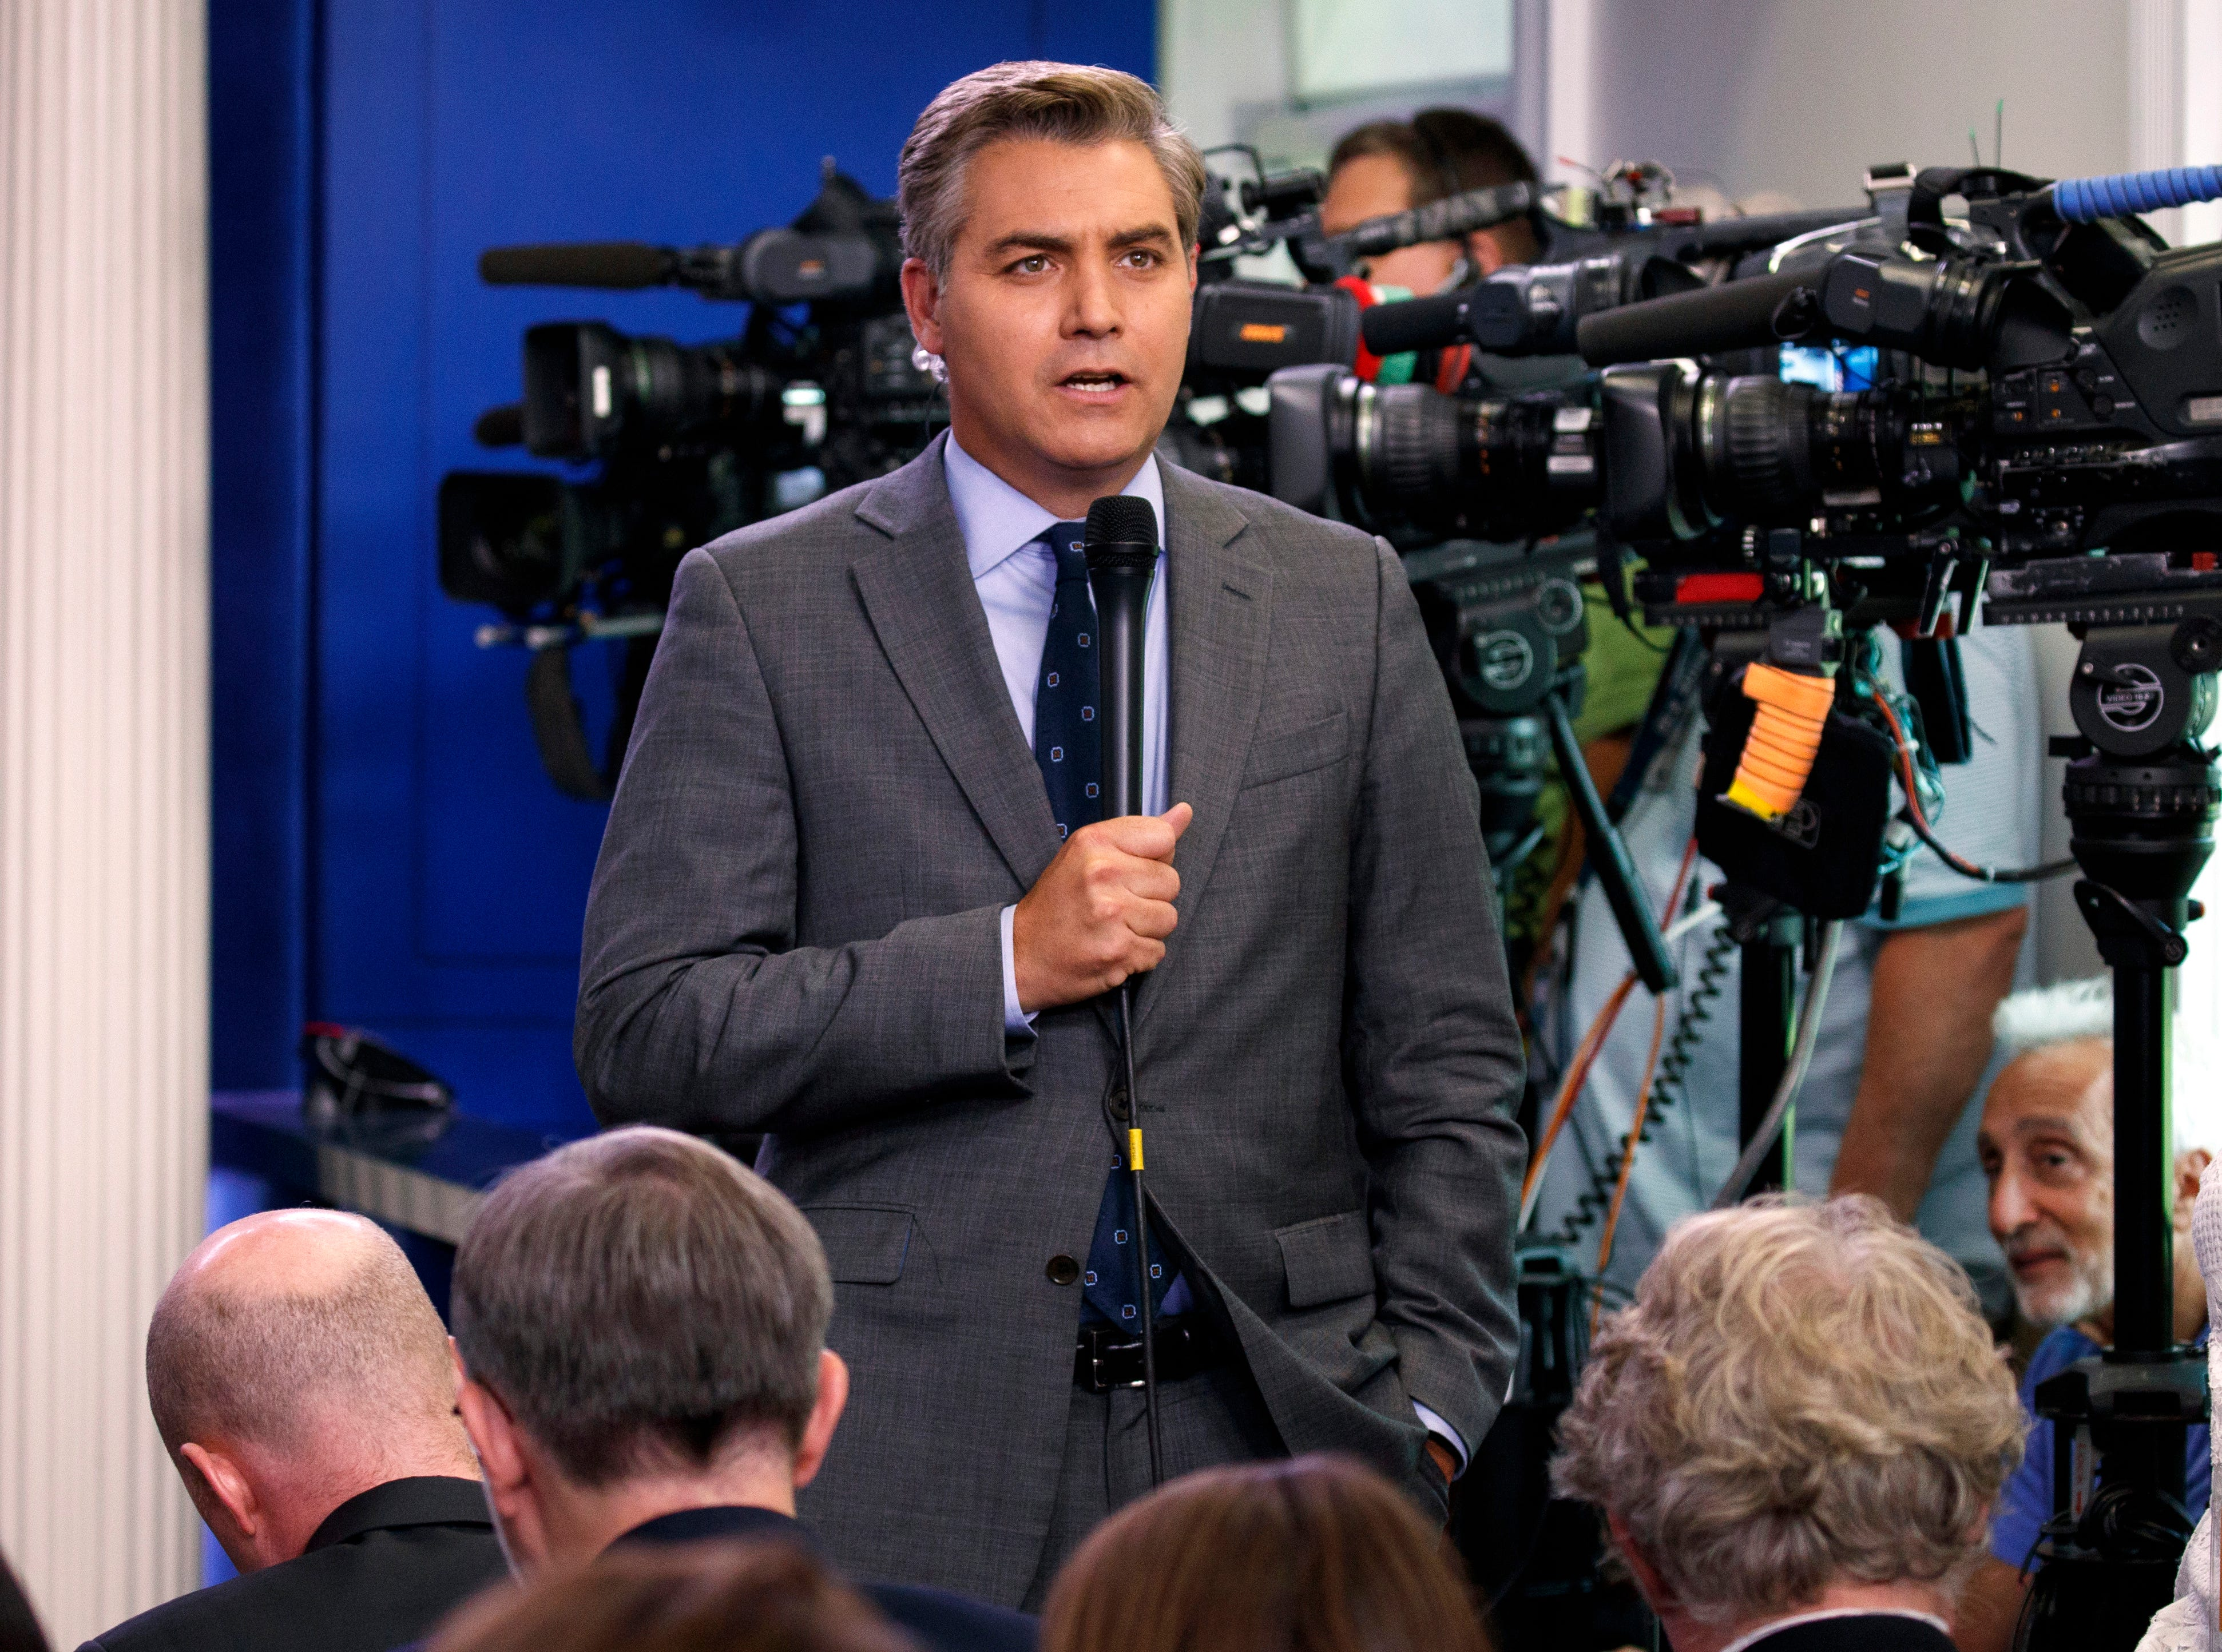 CNN's Jim Acosta has White House press badge revoked after Trump called him 'terrible'